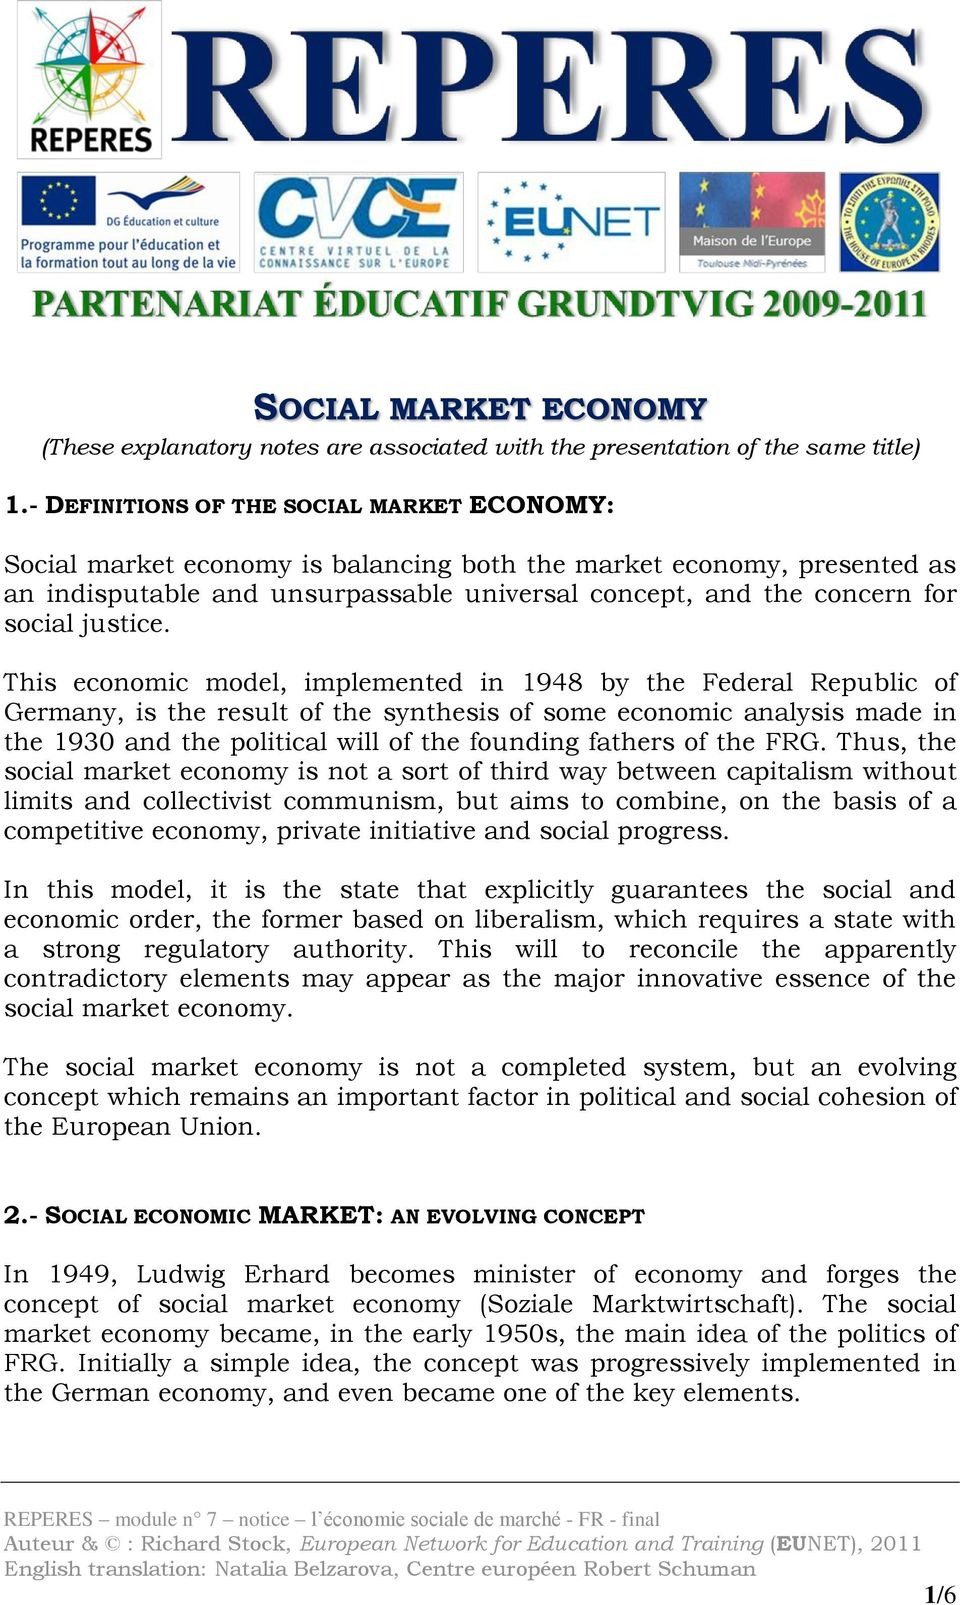 liberal market economy definition